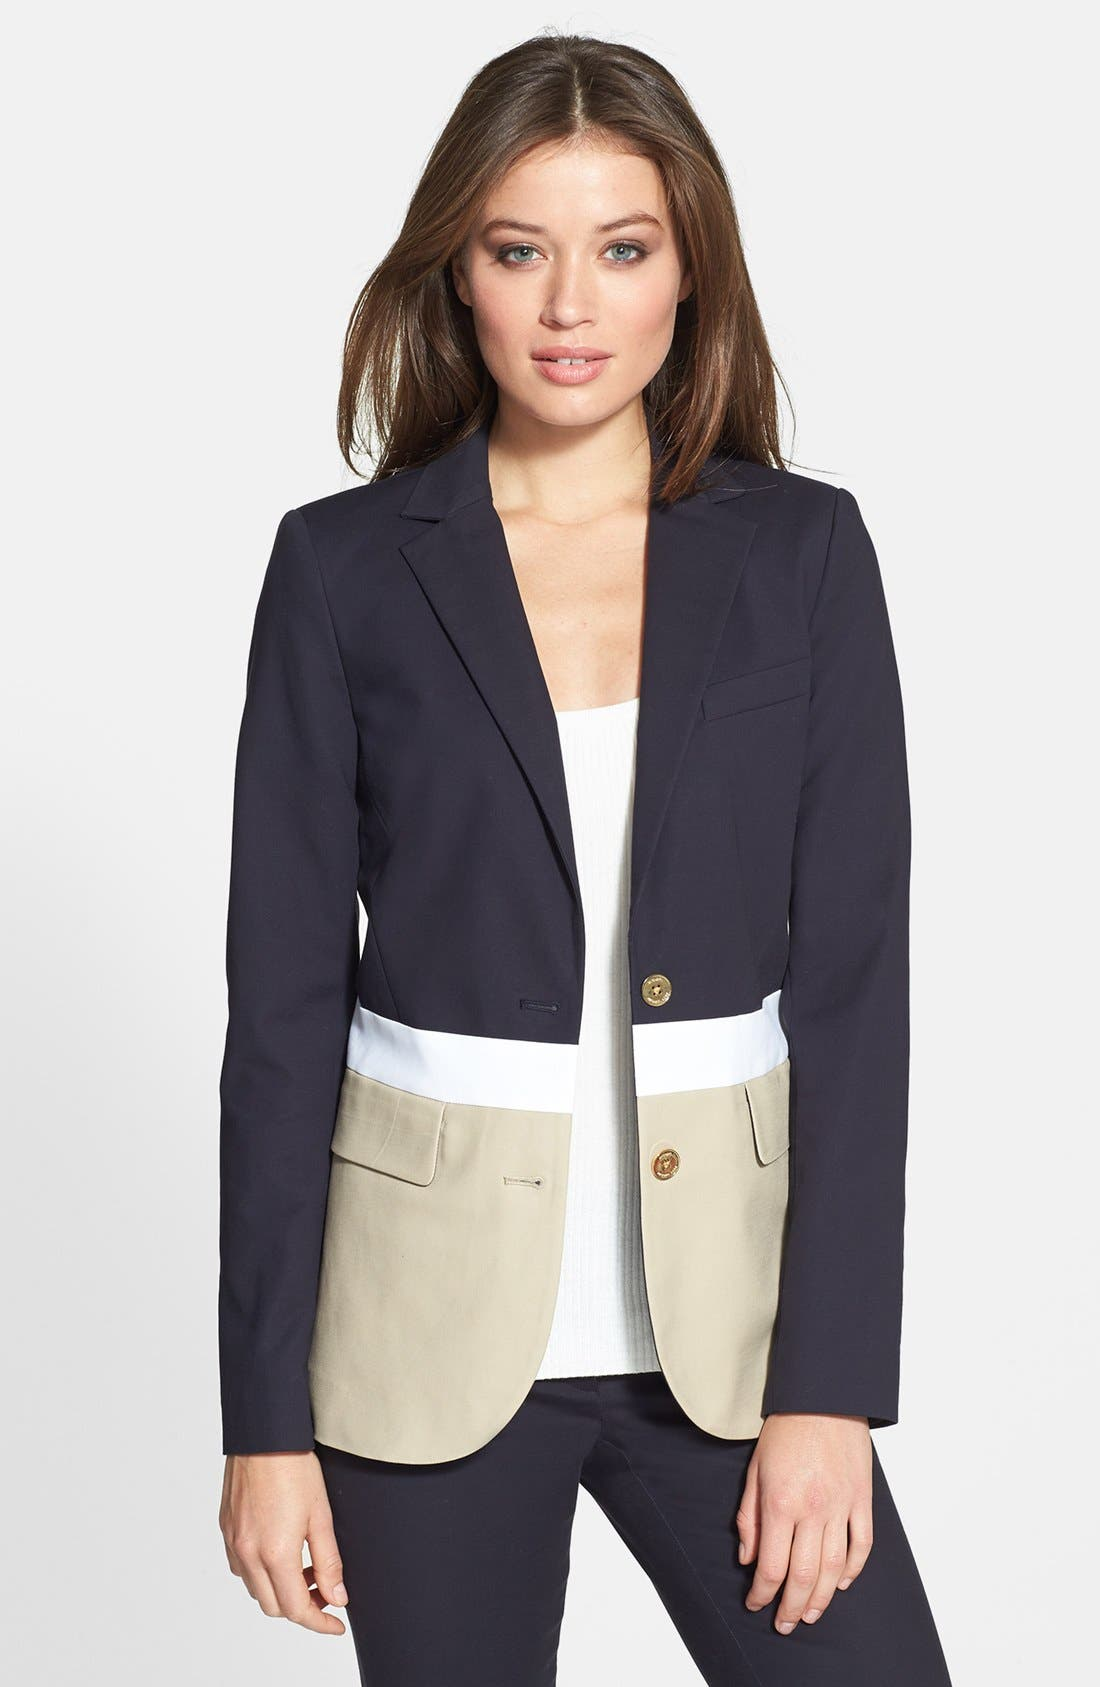 Alternate Image 1 Selected - MICHAEL Michael Kors Colorblock Two-Button Blazer (Petite)